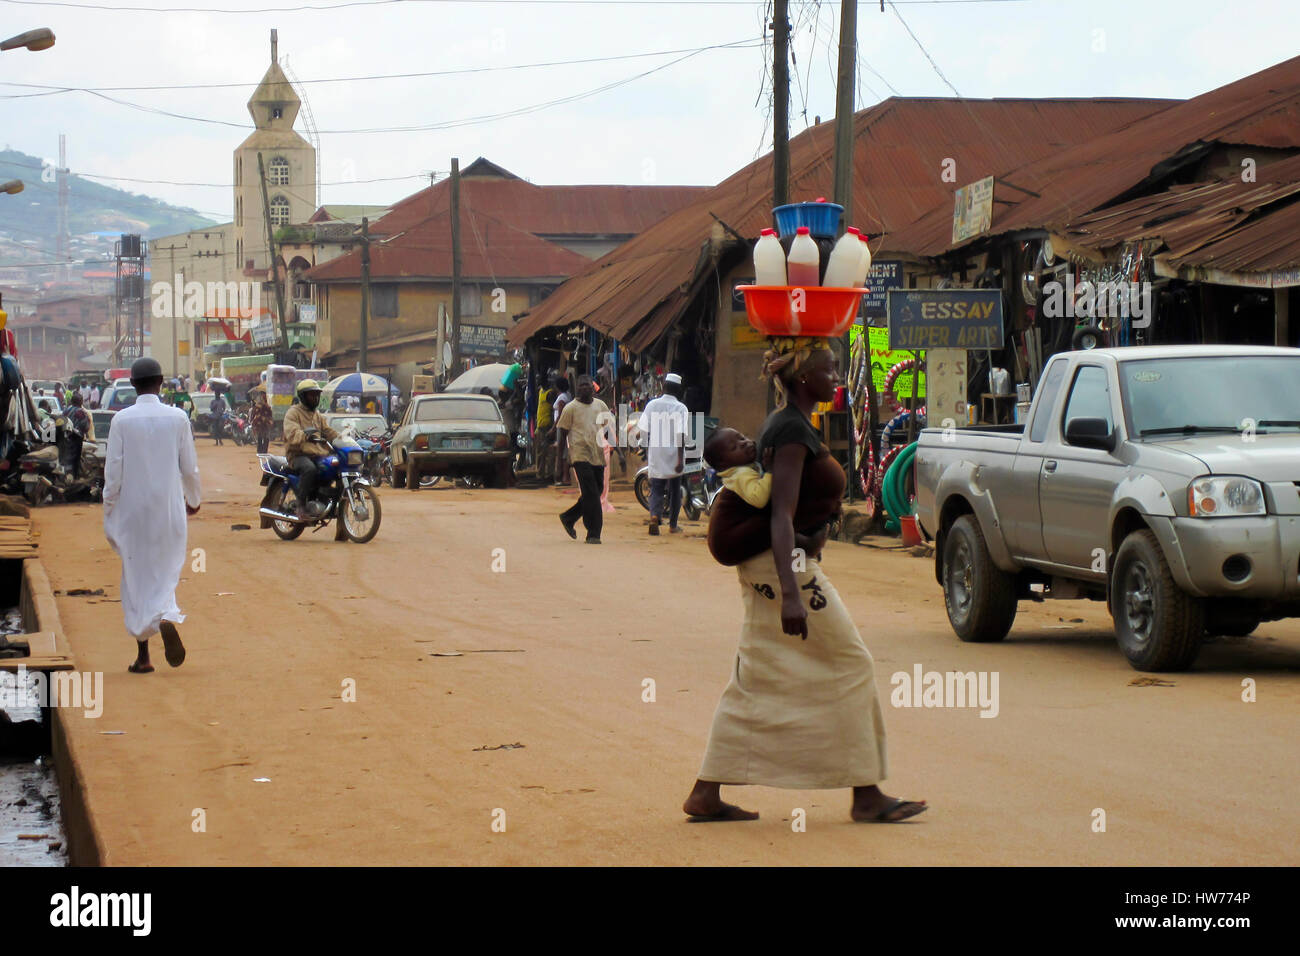 Street view with people and cars in the city of Lagos, the largest city in Nigeria and the African continent. - Stock Image